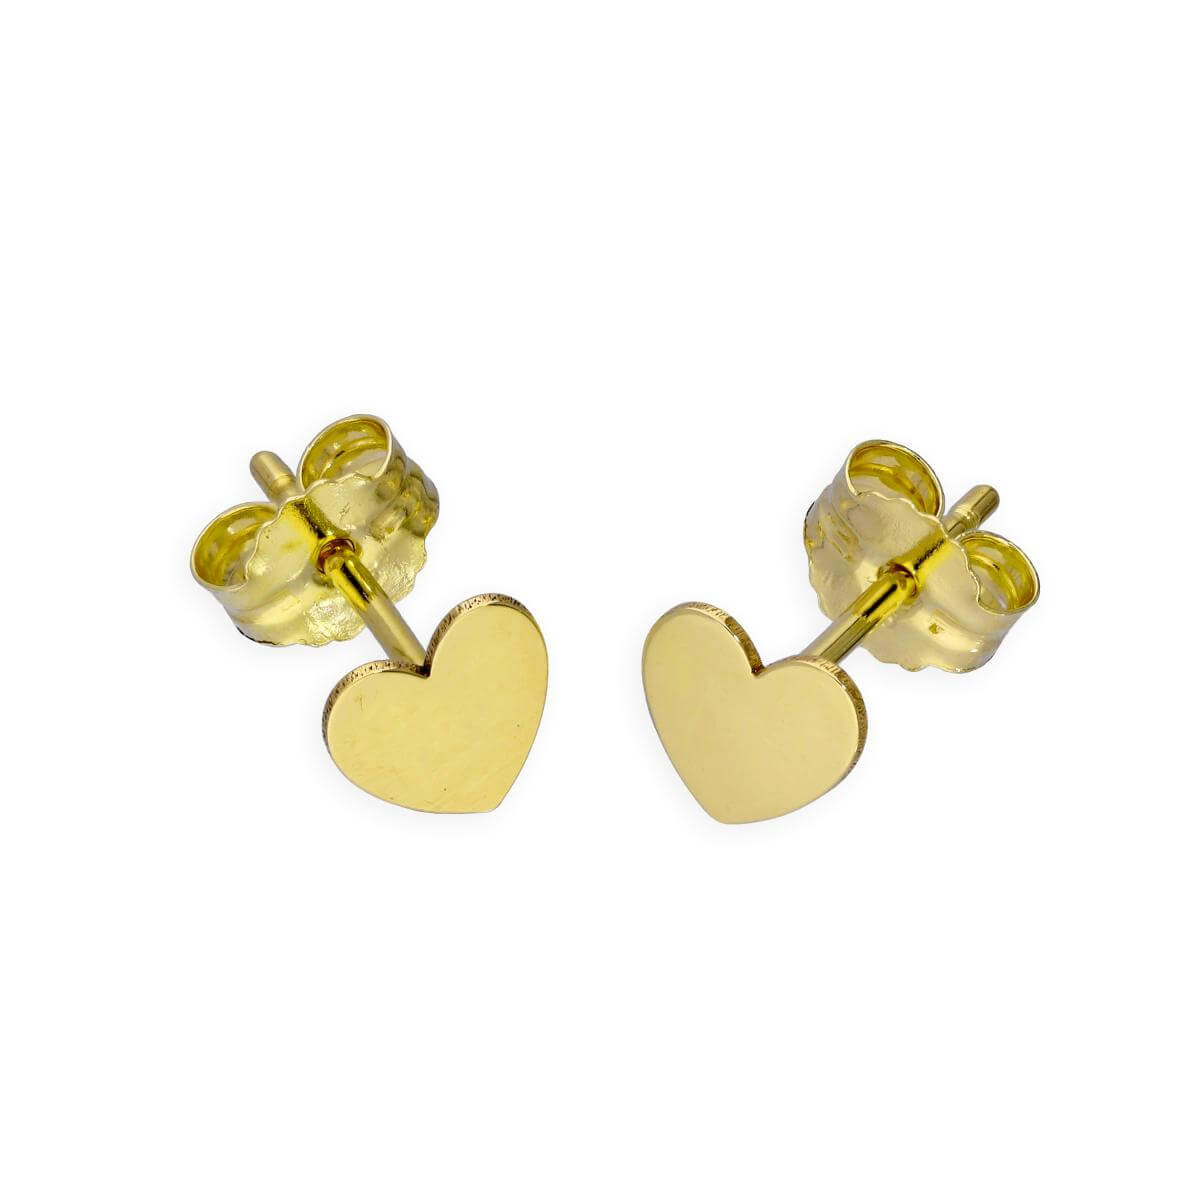 9ct Gold Flat Heart Stud Earrings